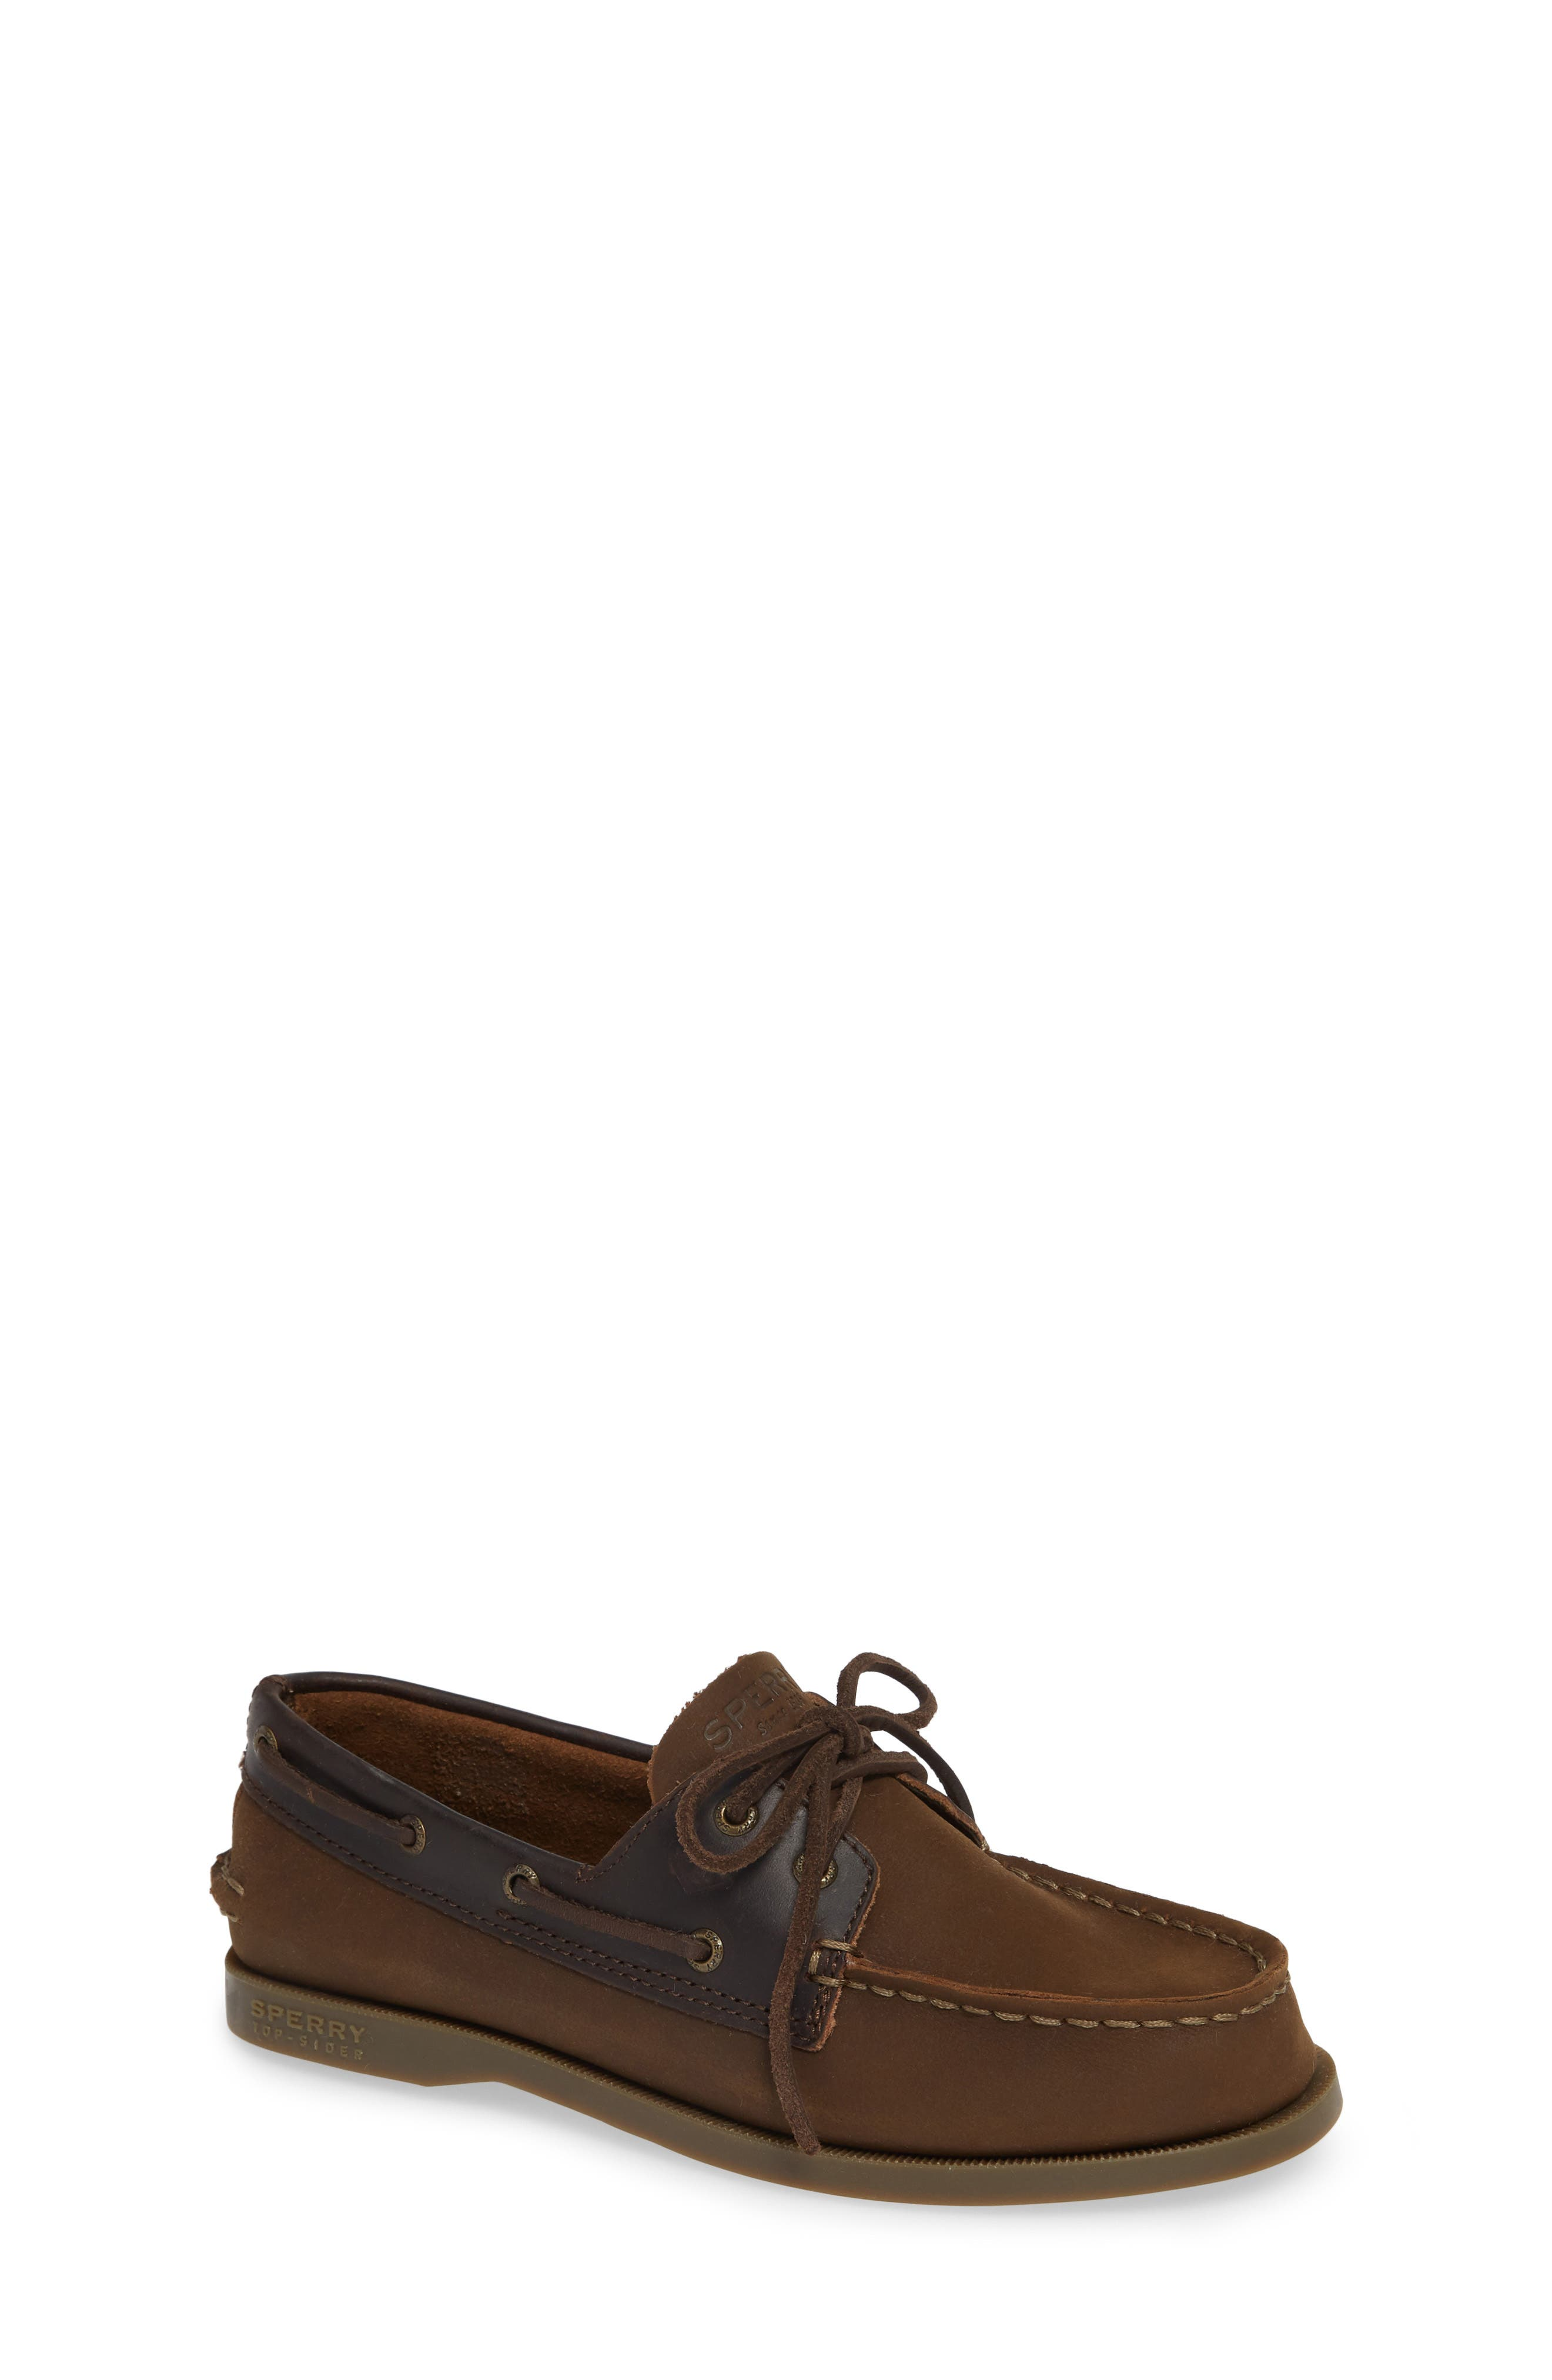 'Authentic Original' Boat Shoe,                         Main,                         color, BROWN BUCK LEATHER